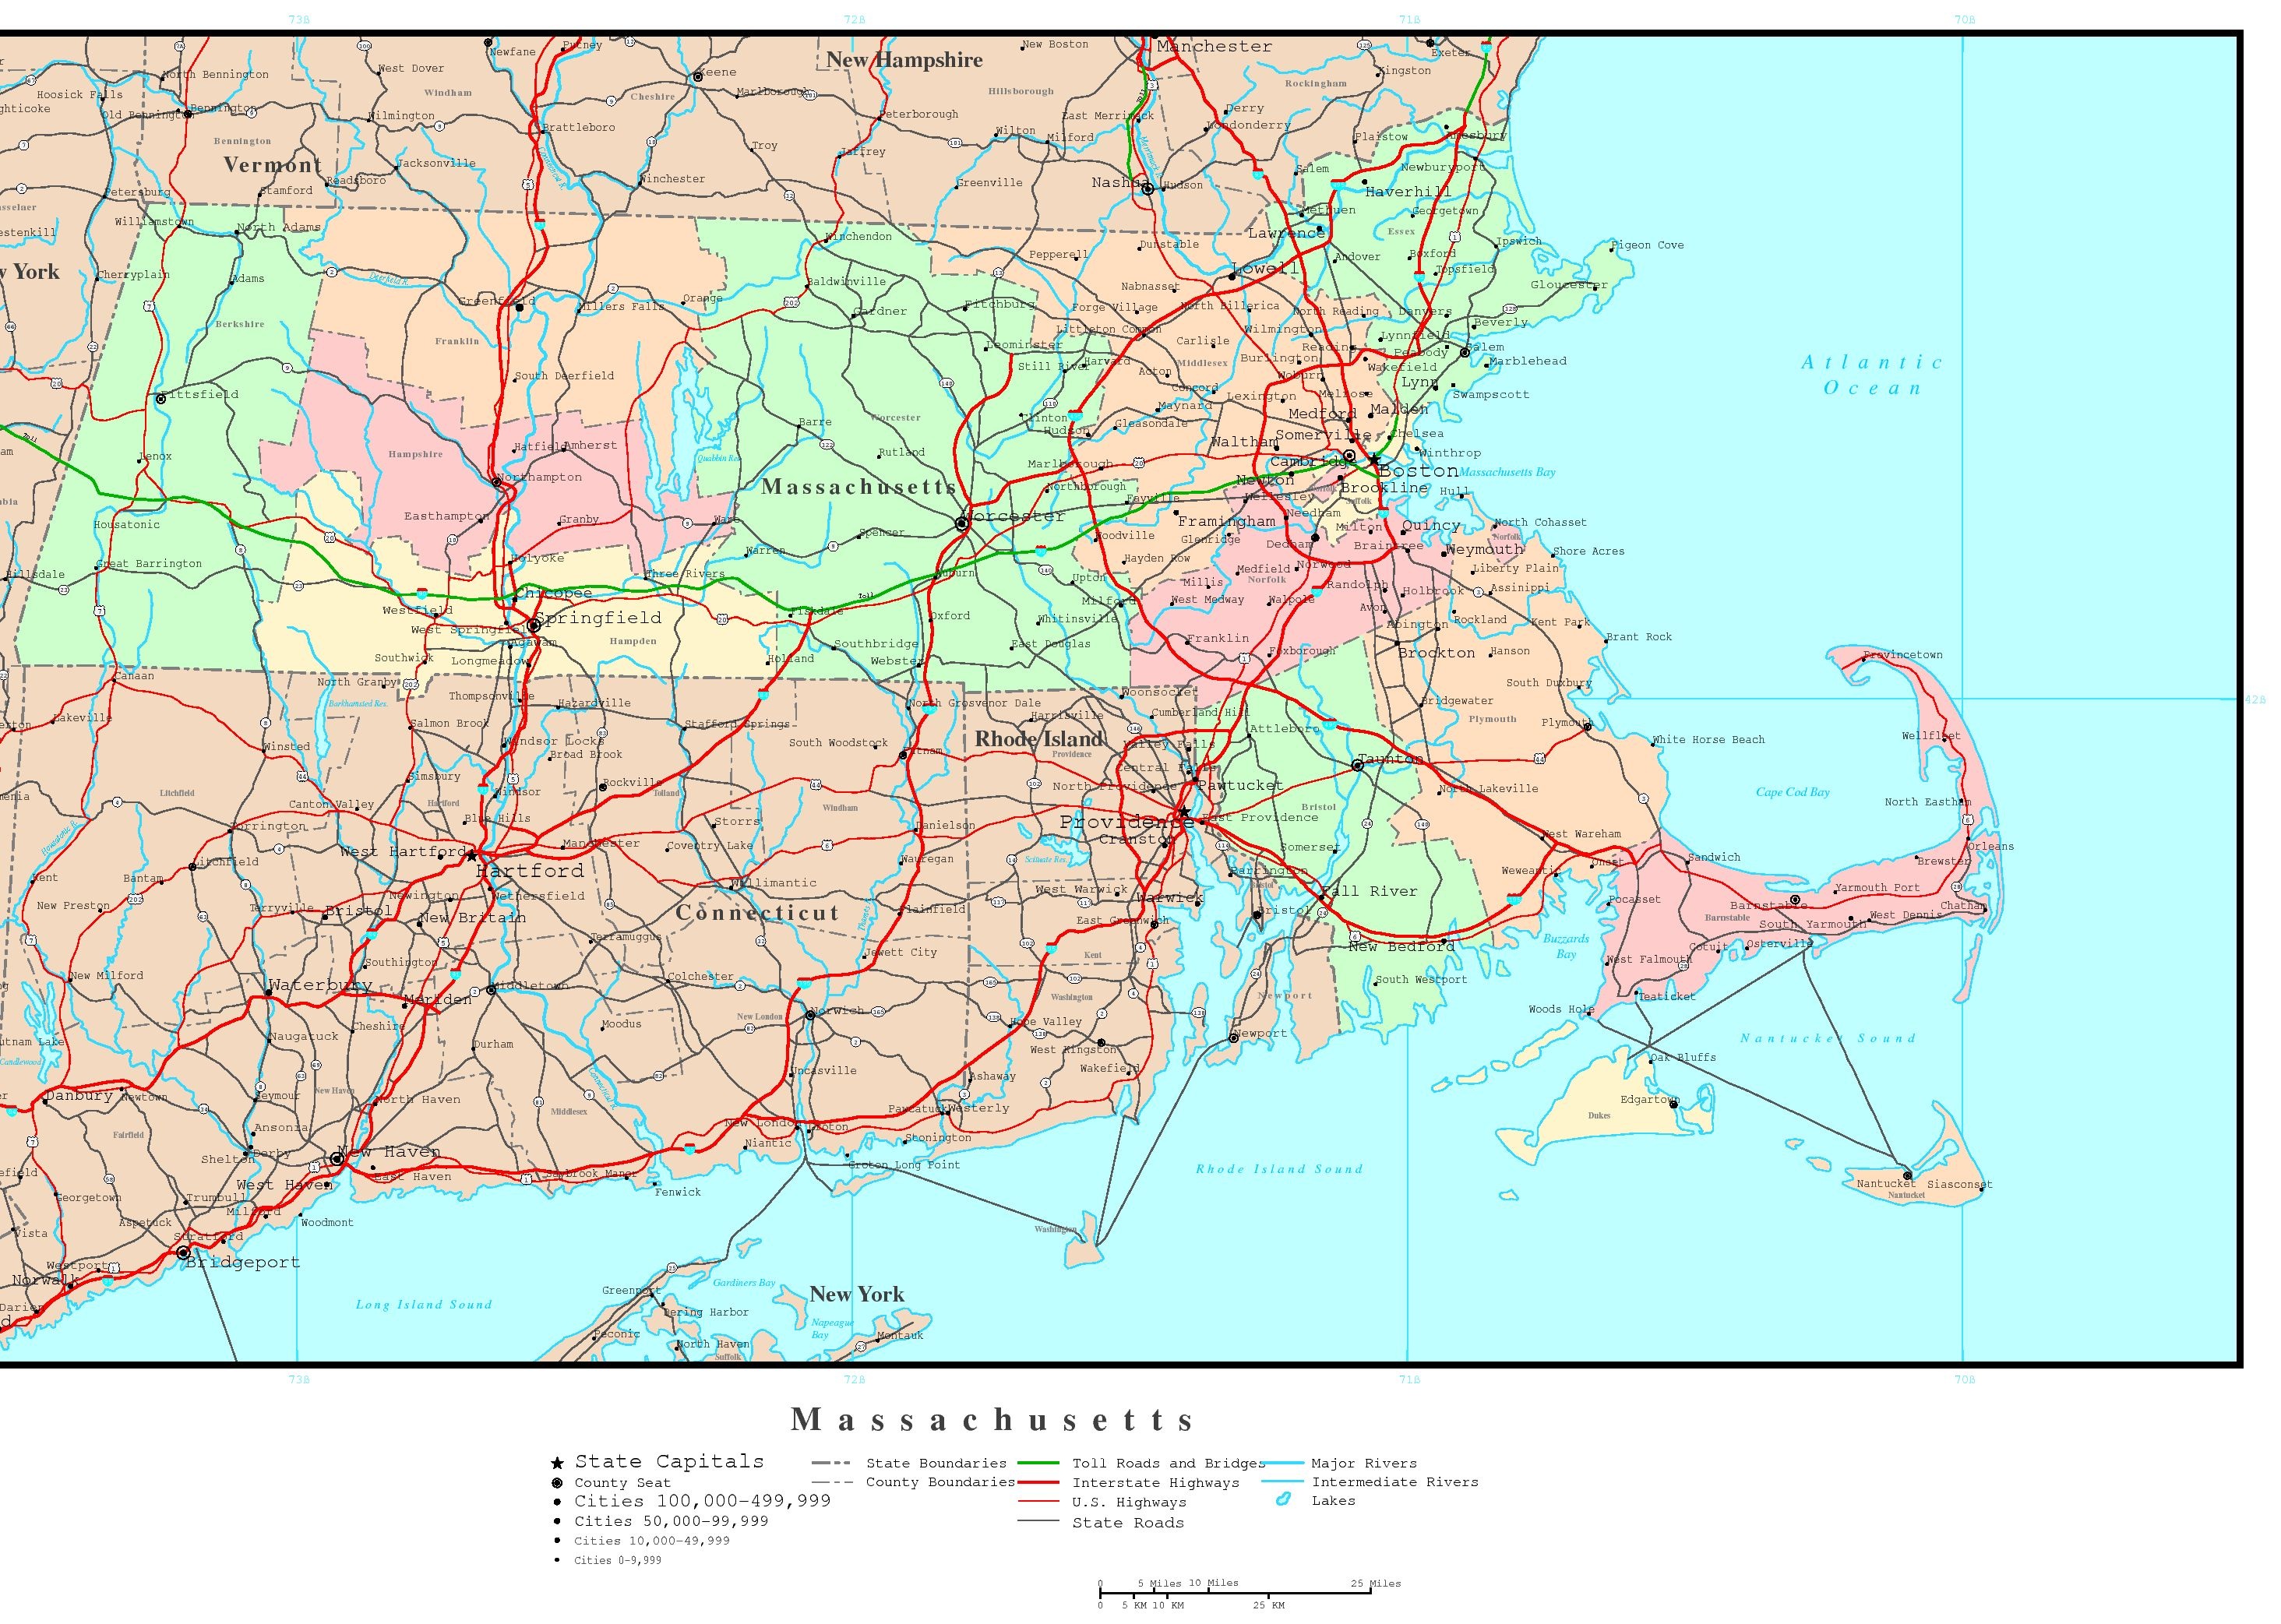 Massachusetts Political Map - Massachusetts map